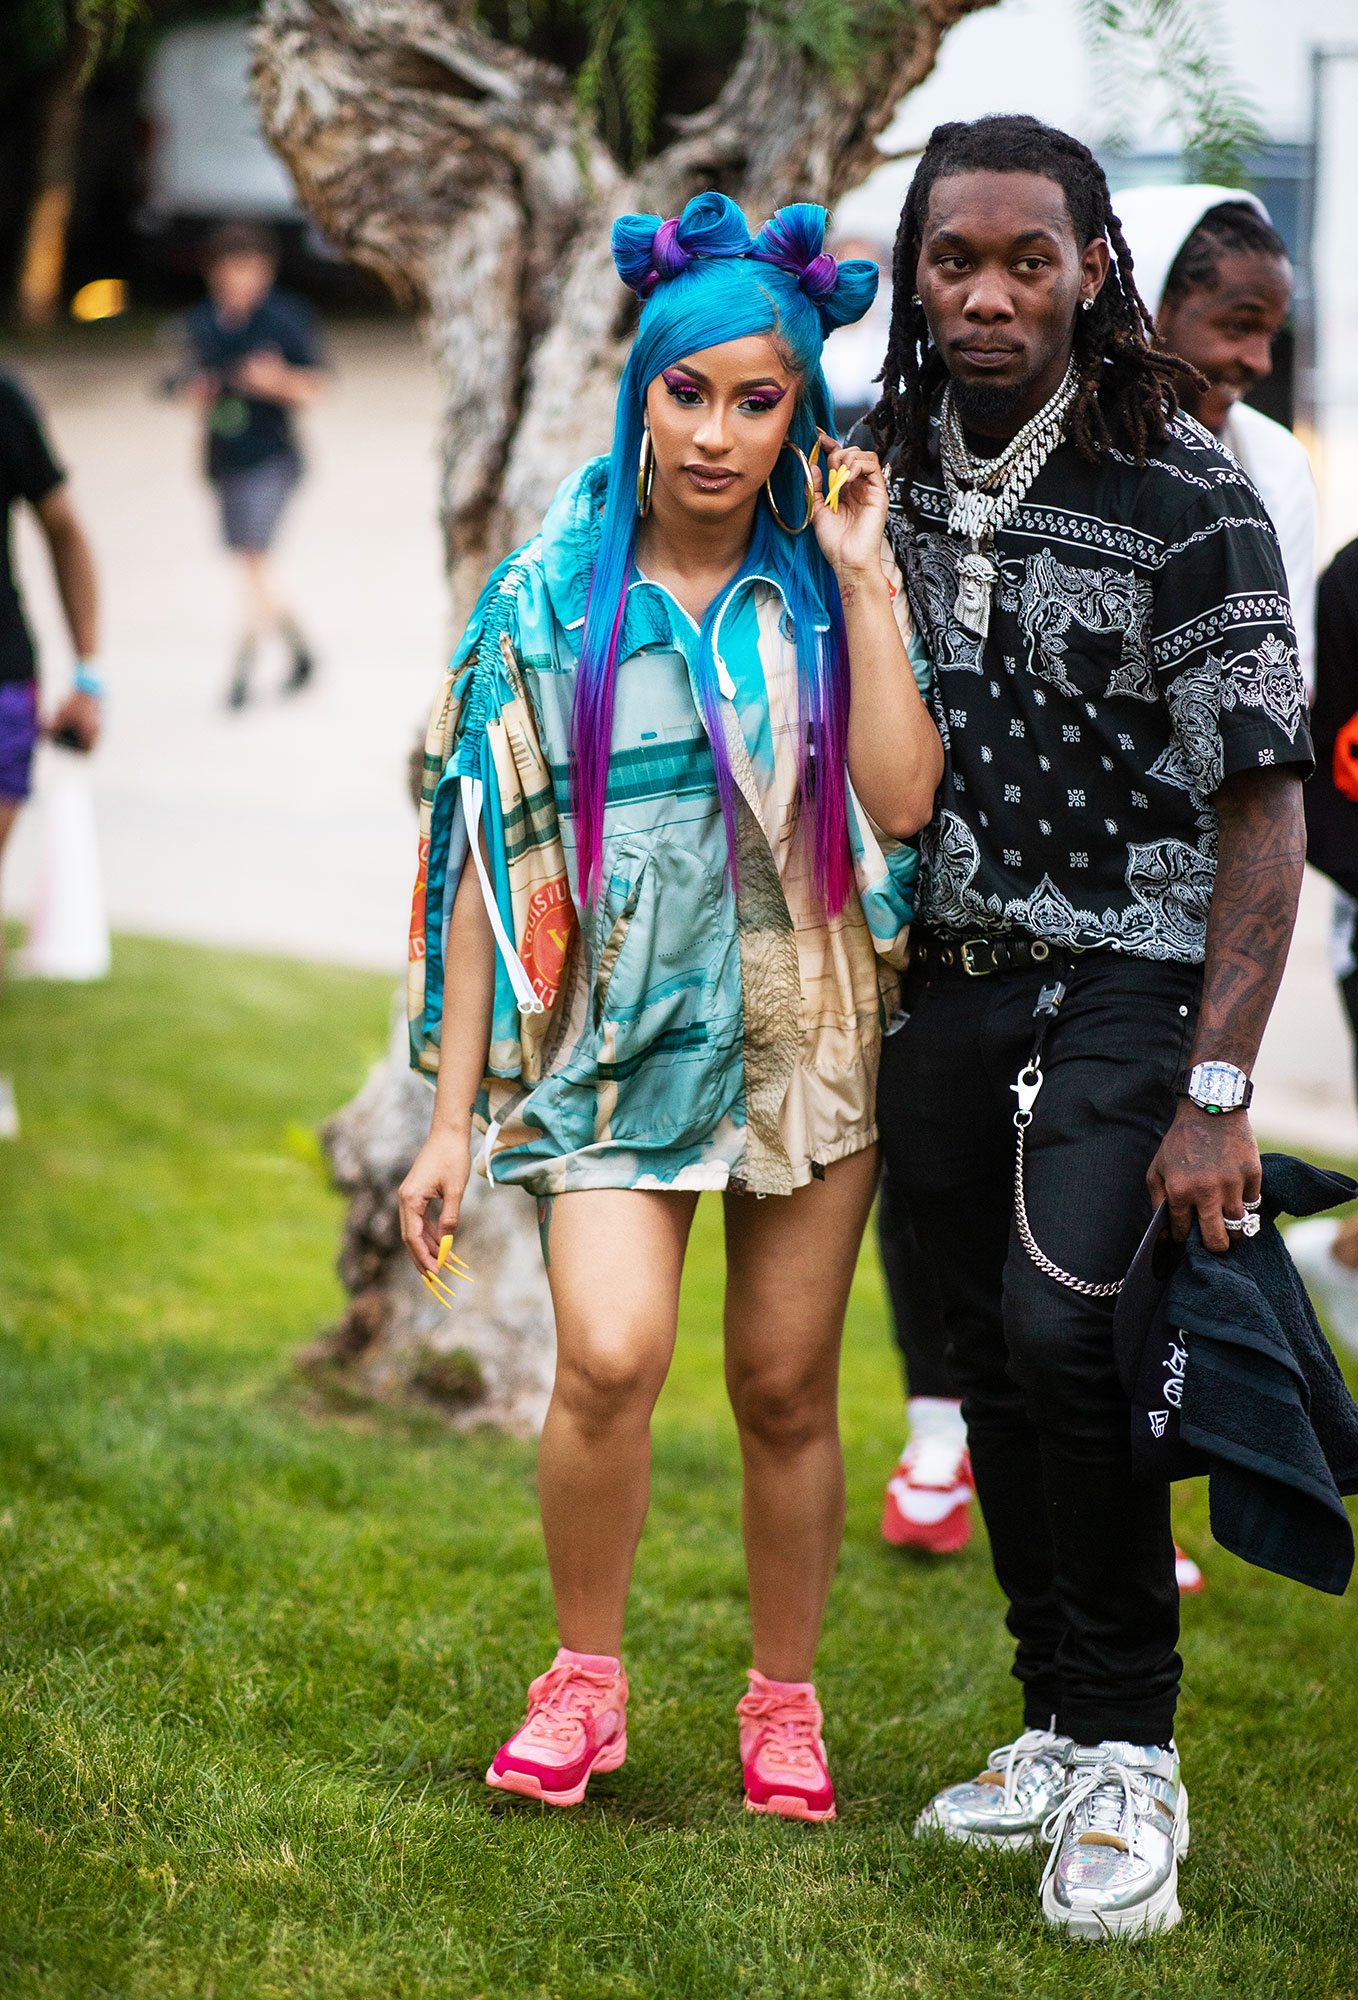 Cardi B and Offset coachella fashion - After slaying her performance on Saturday night, the rapper rocked rainbow strands with her printed minidress at the Revolve Festival on Sunday, April 14.